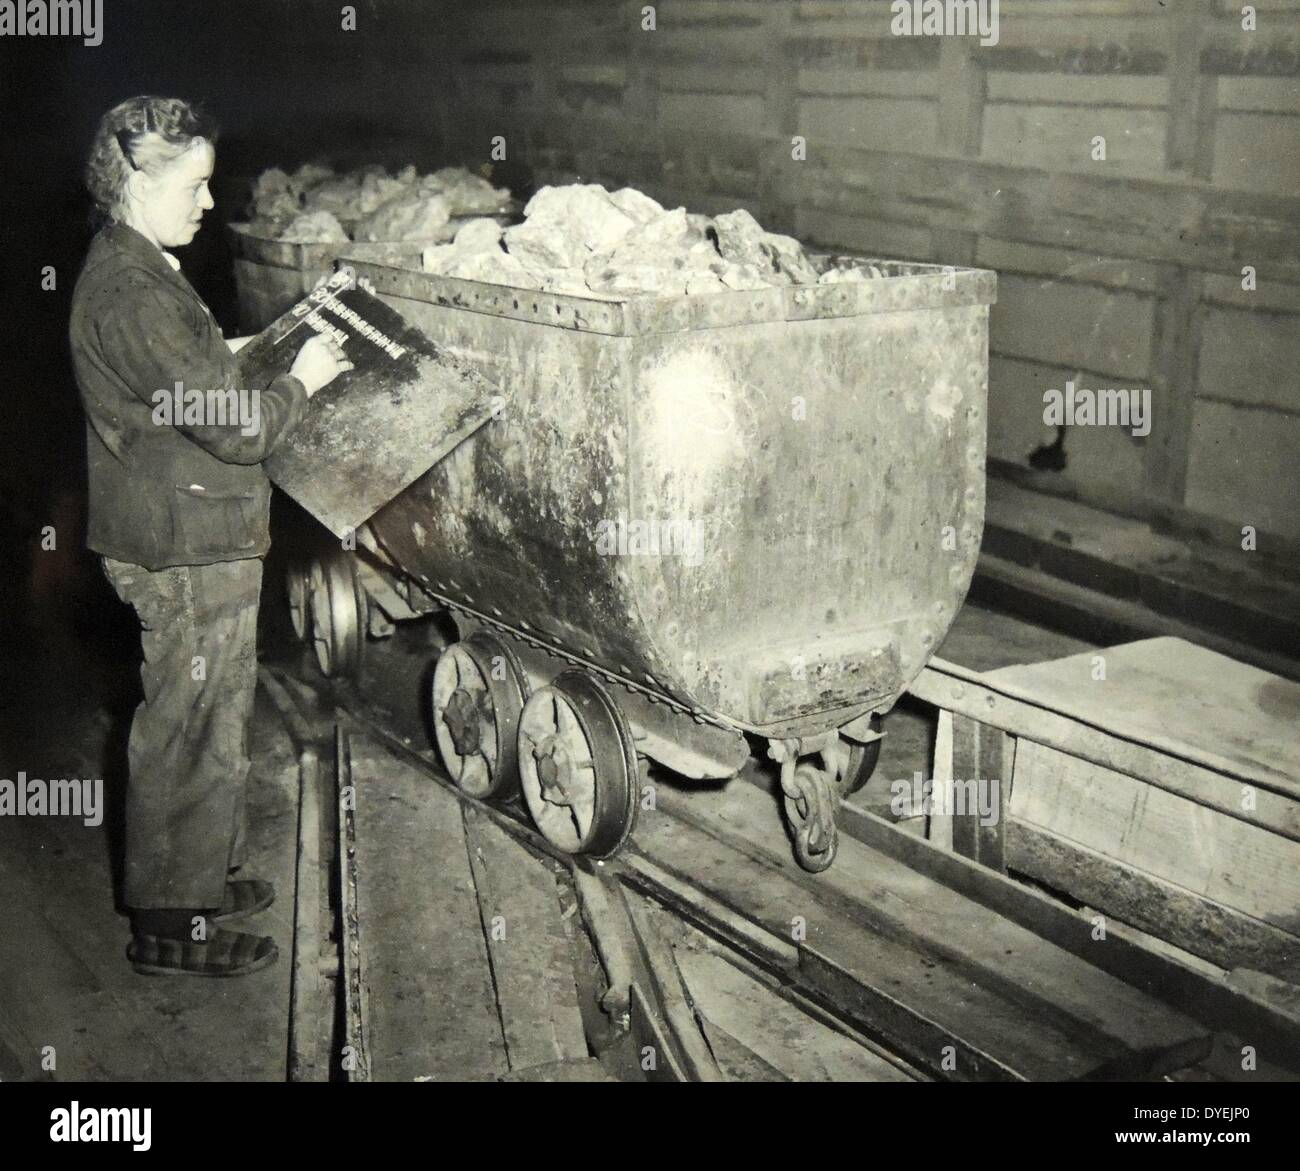 mining in france was revived under the Marshall plan in 1950. - Stock Image